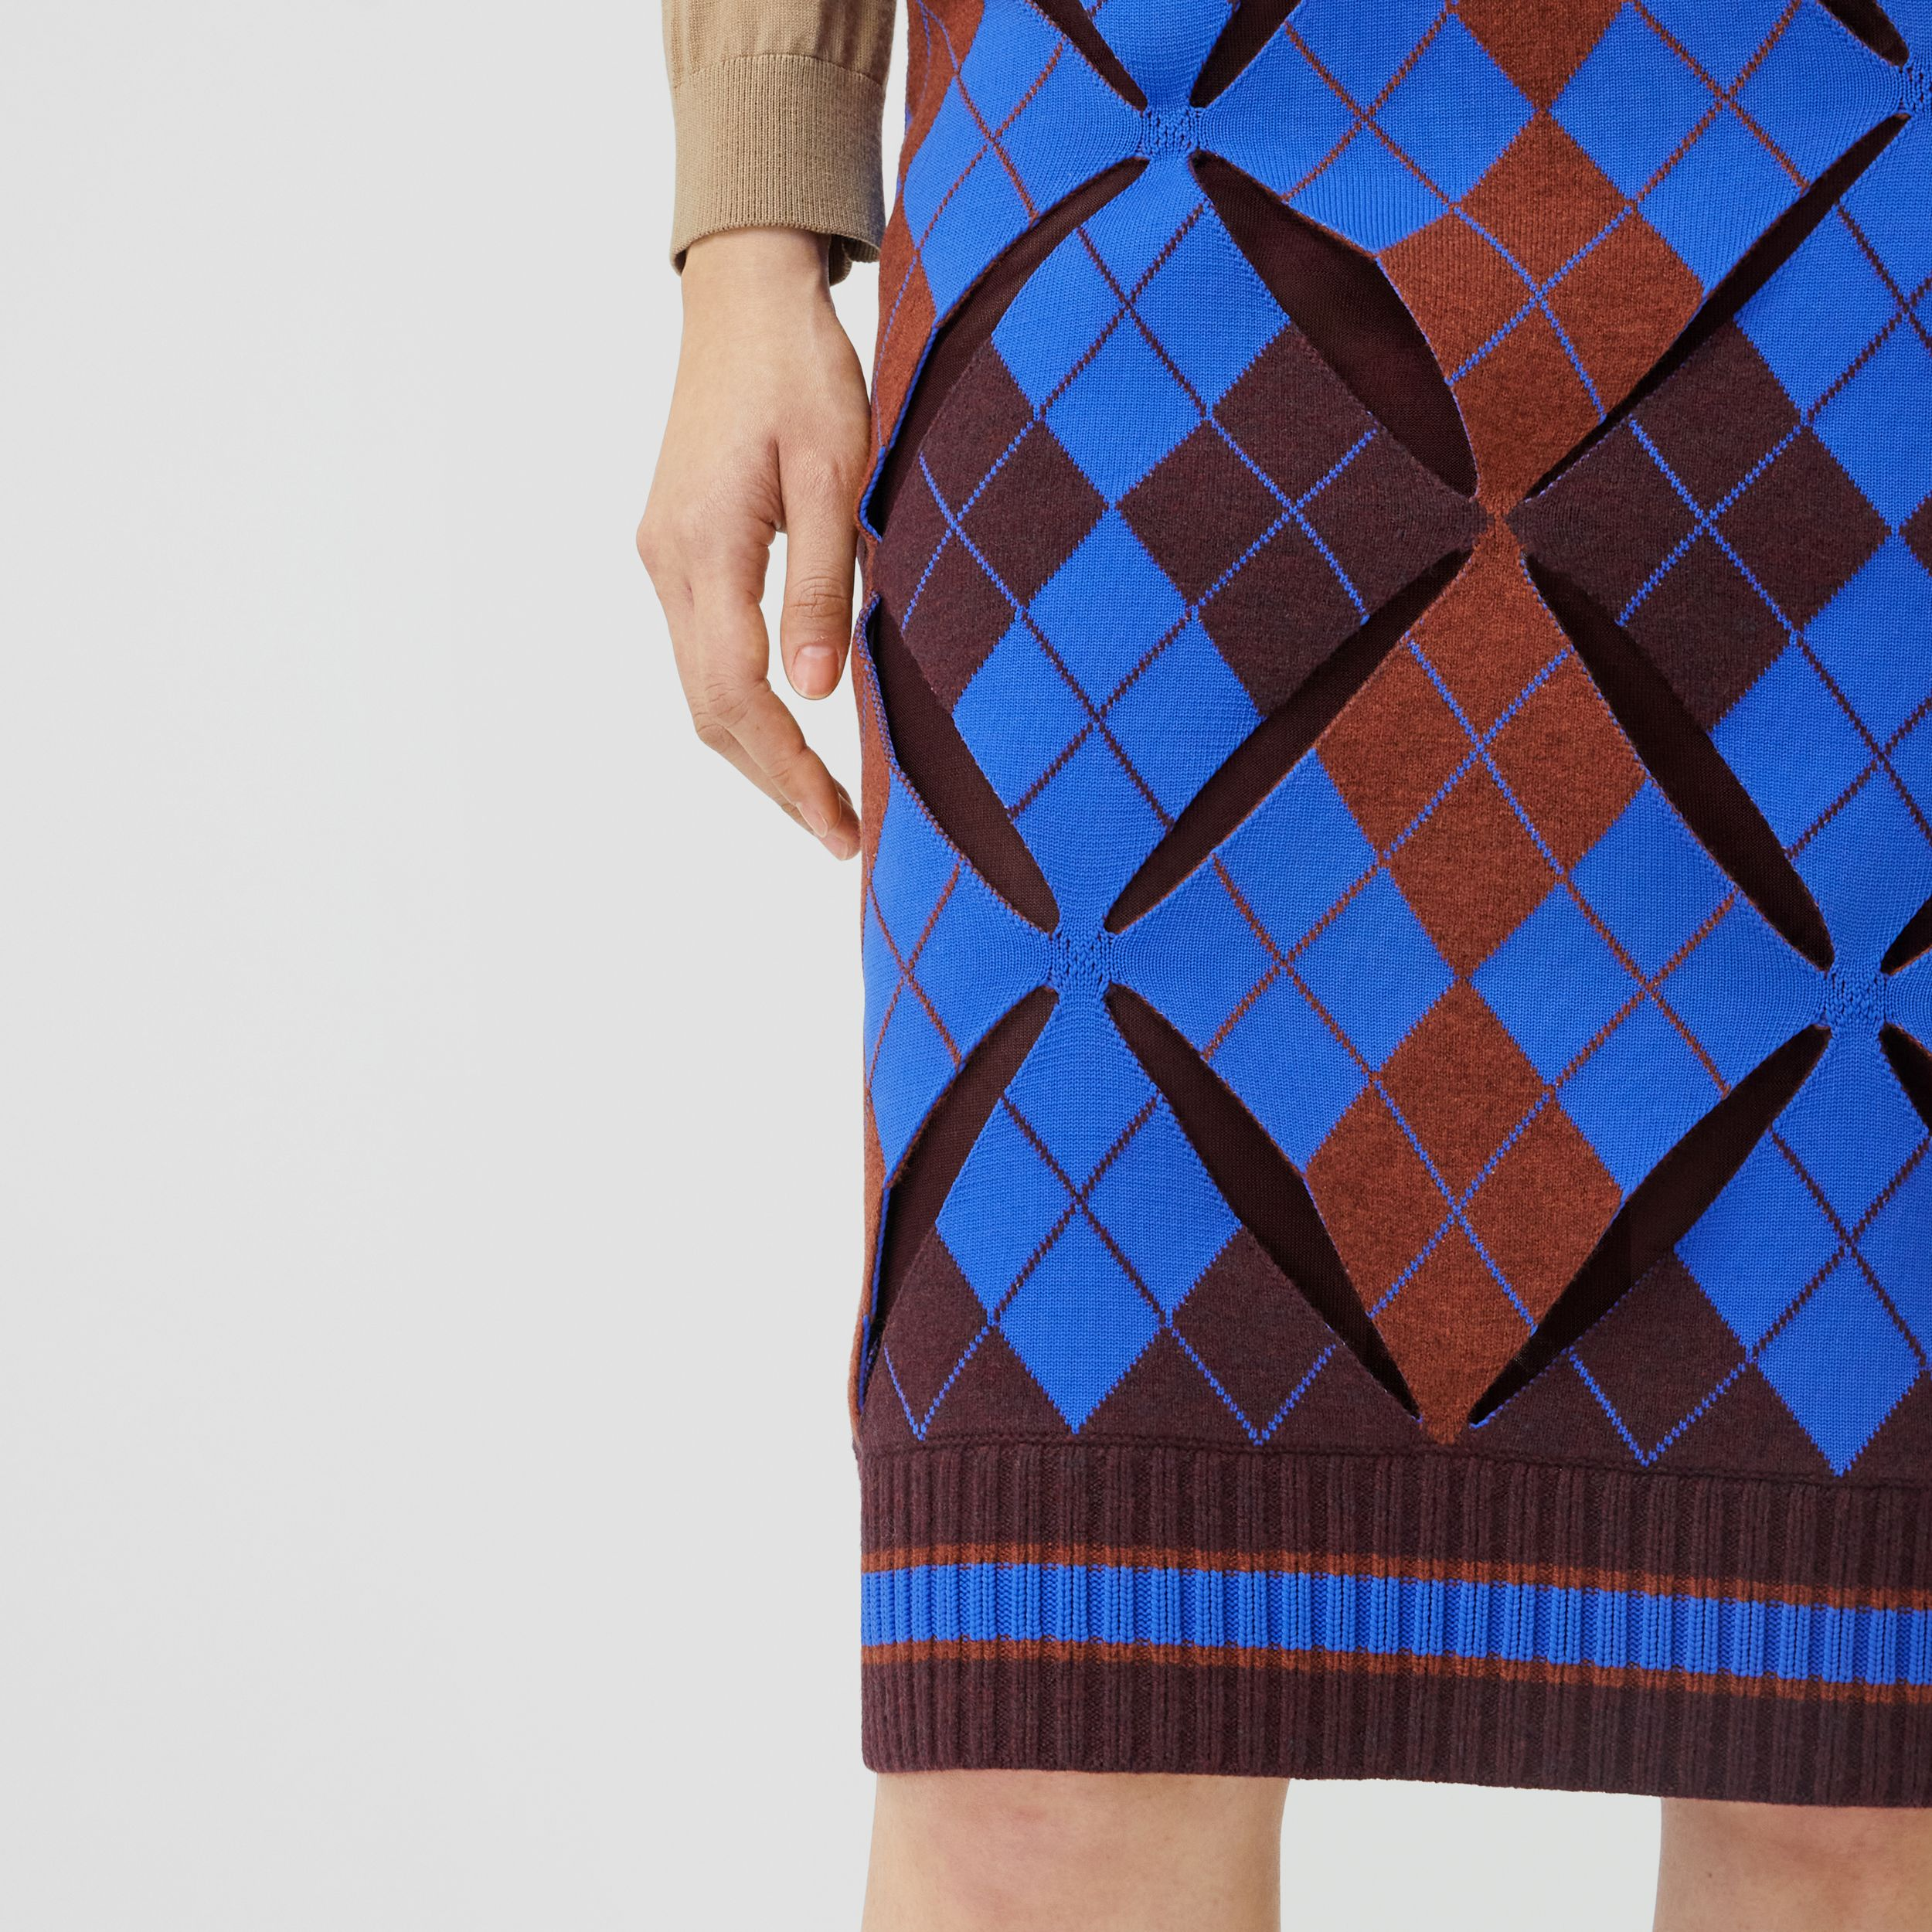 Cut-out Detail Argyle Technical Wool Jacquard Skirt in Bright Blue - Women | Burberry - 2